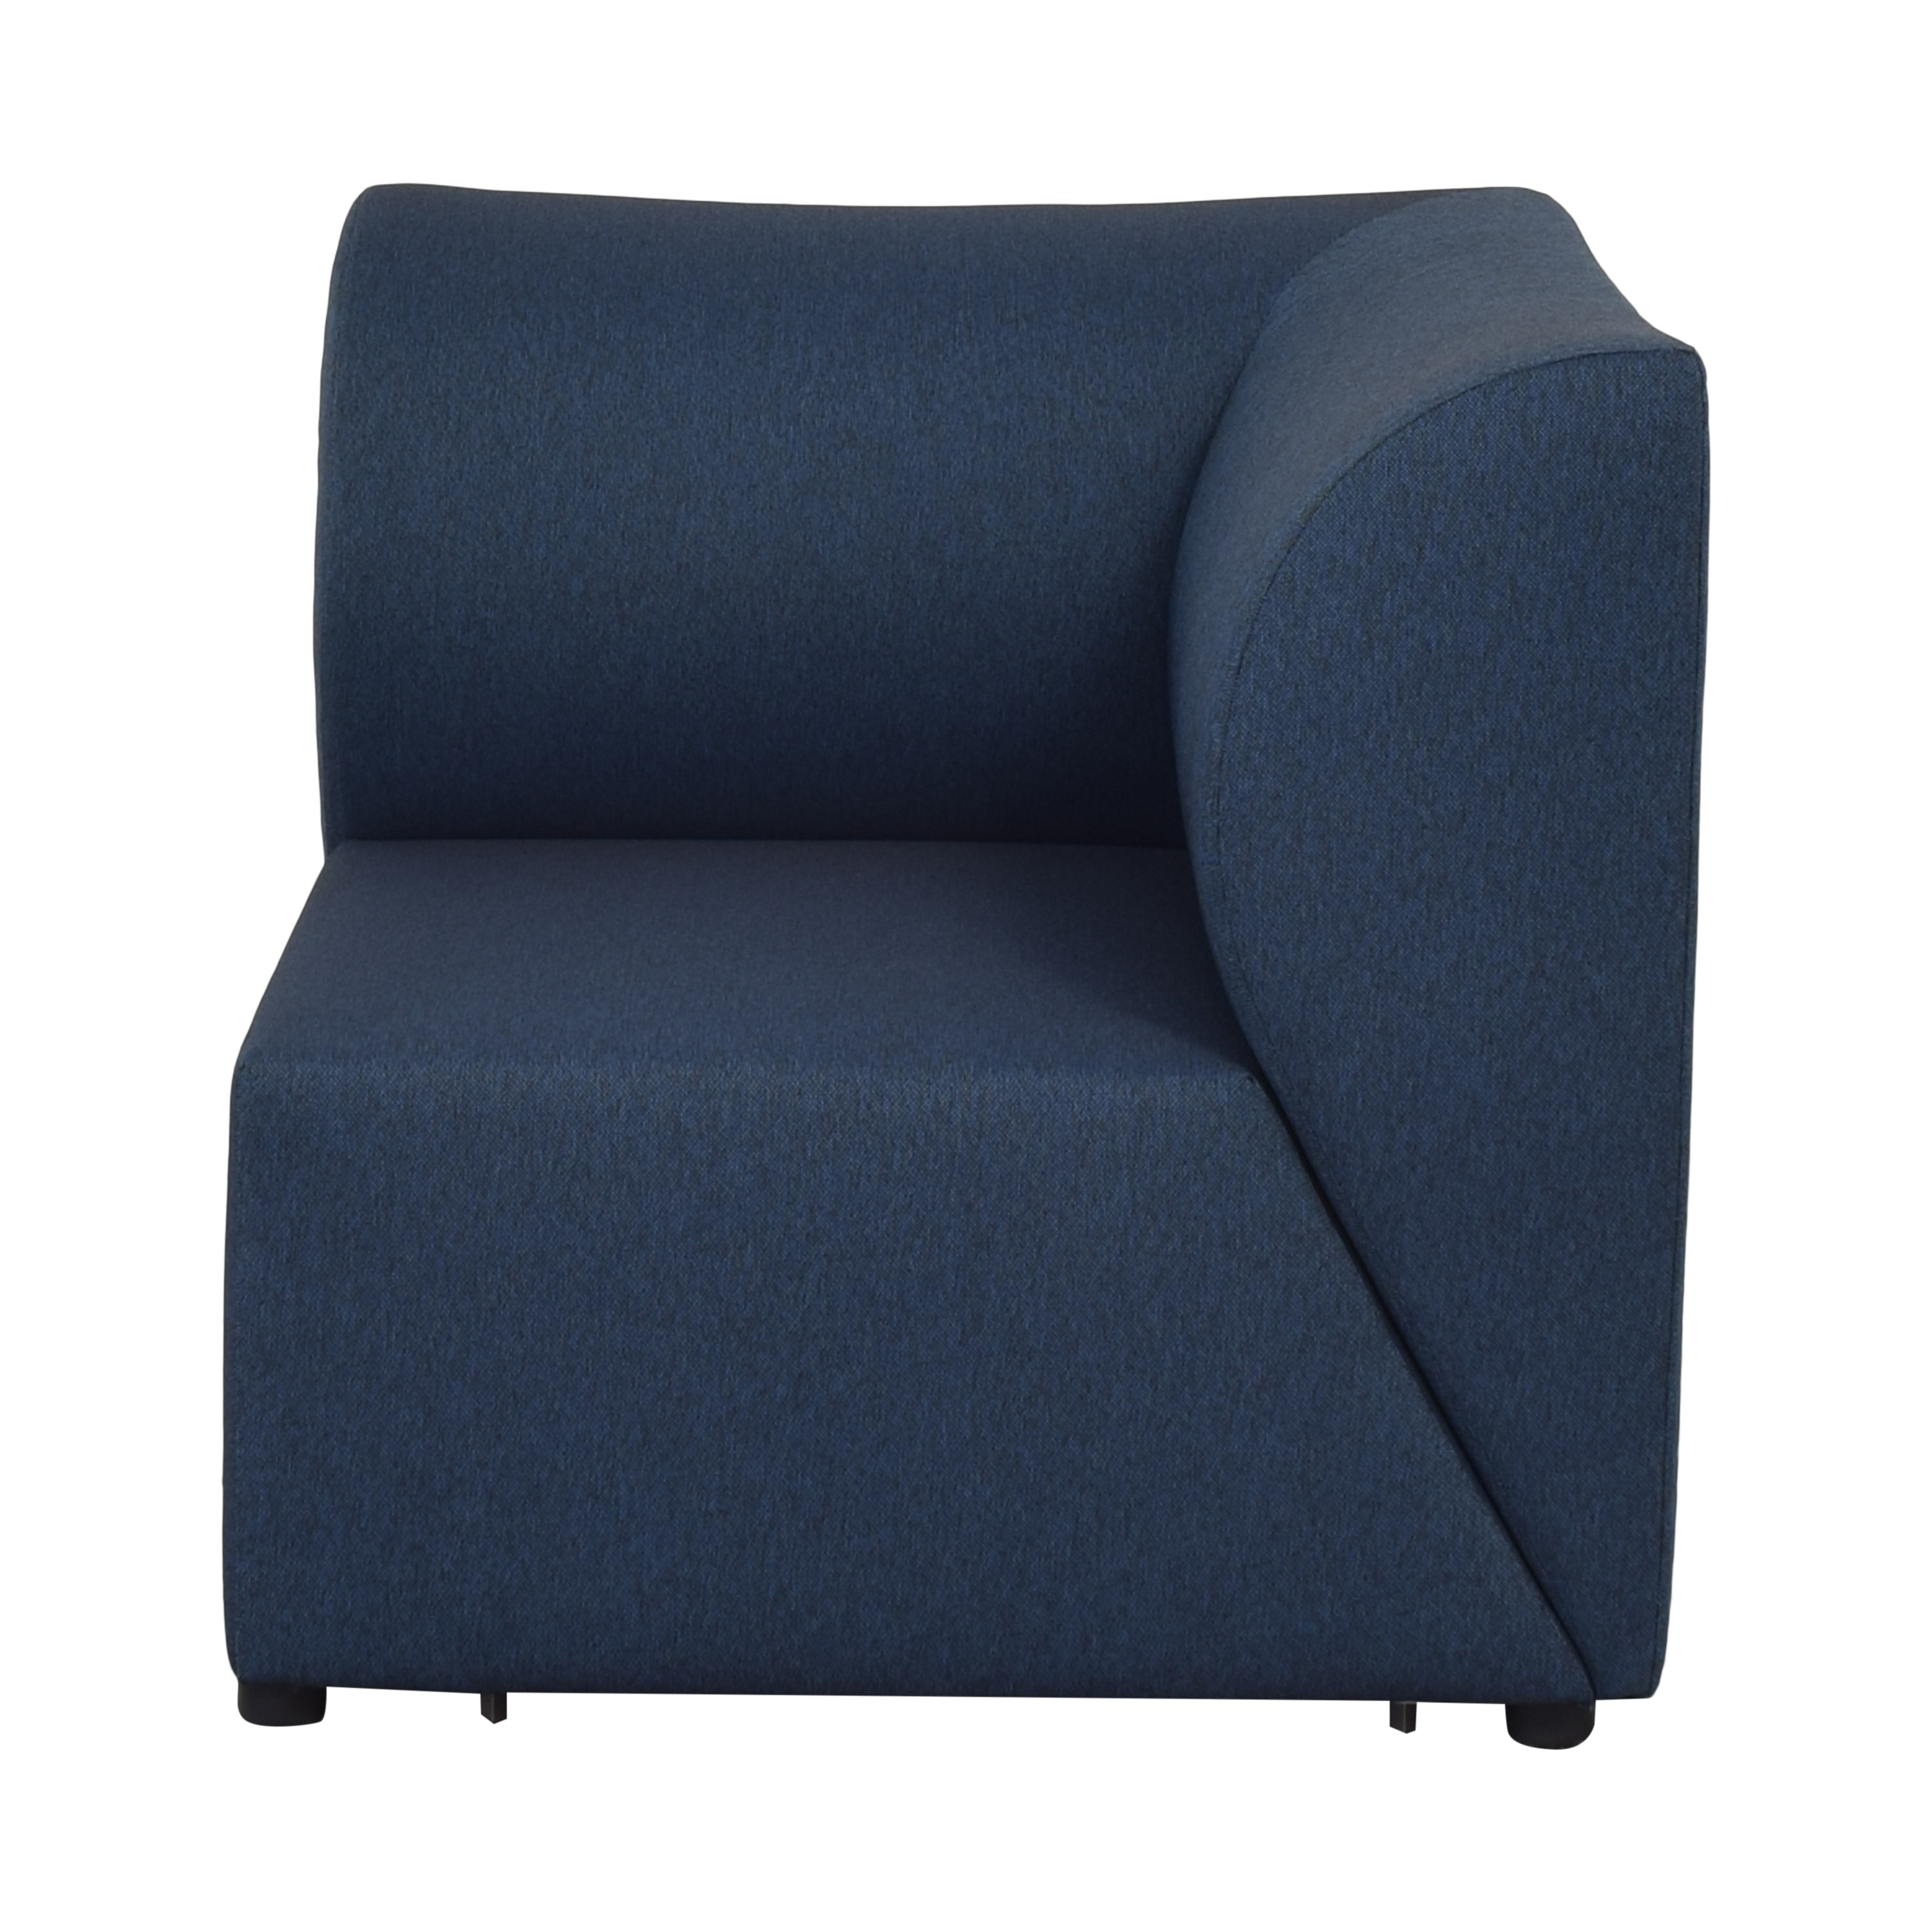 Koleksiyon Poema Corner Chair sale